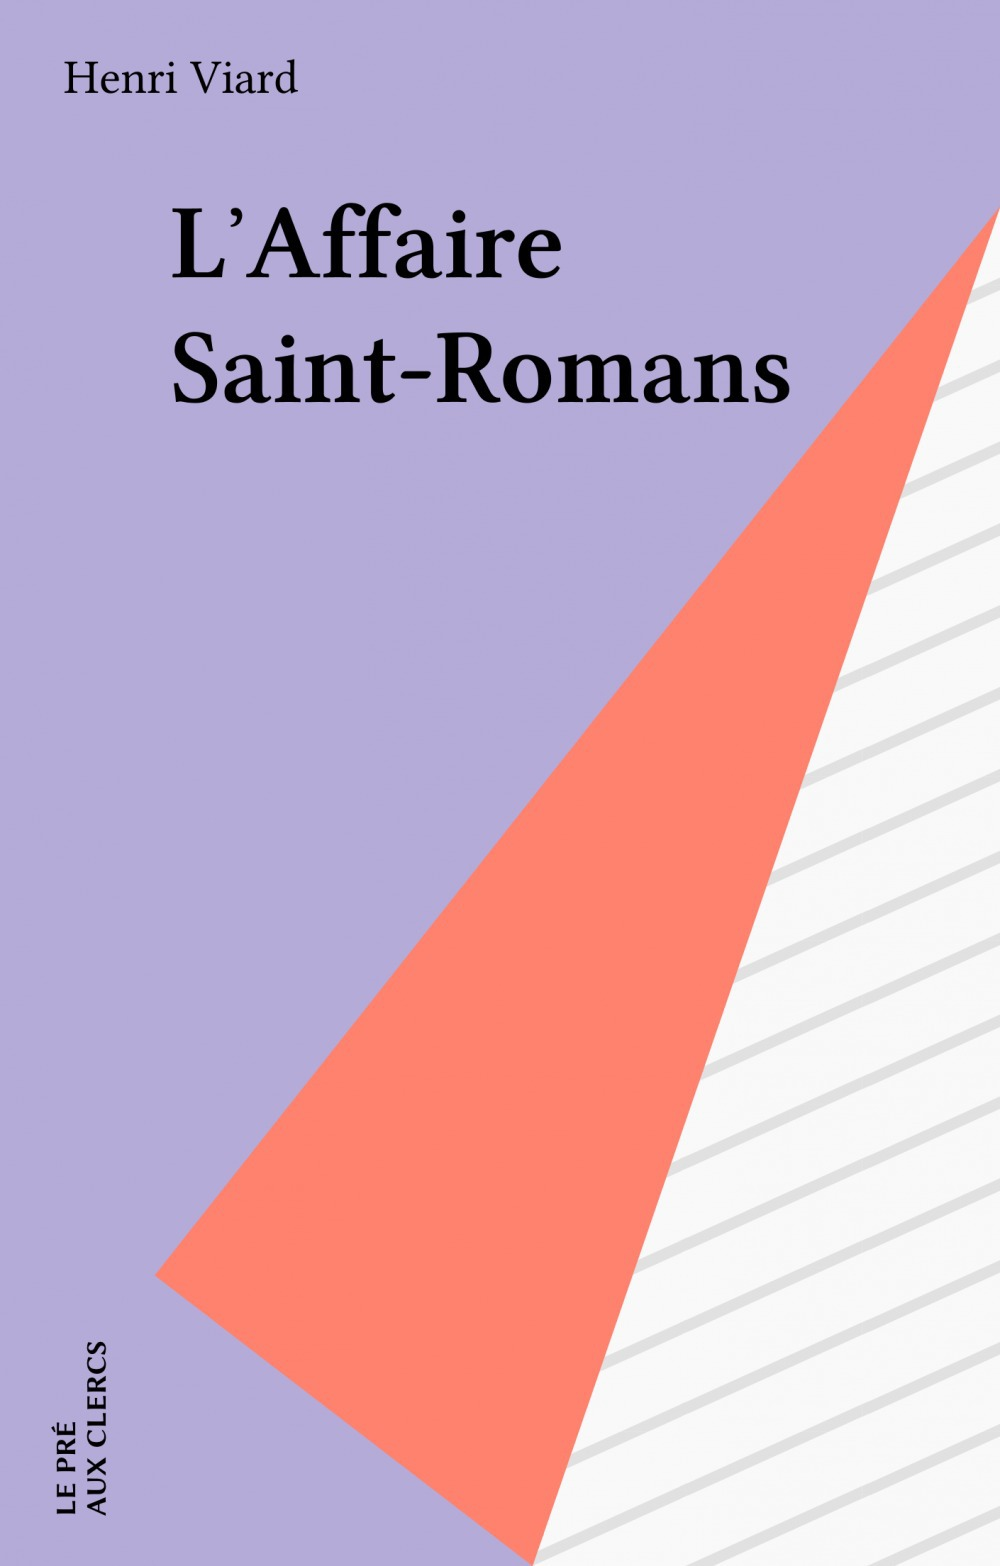 L'affaire st romans